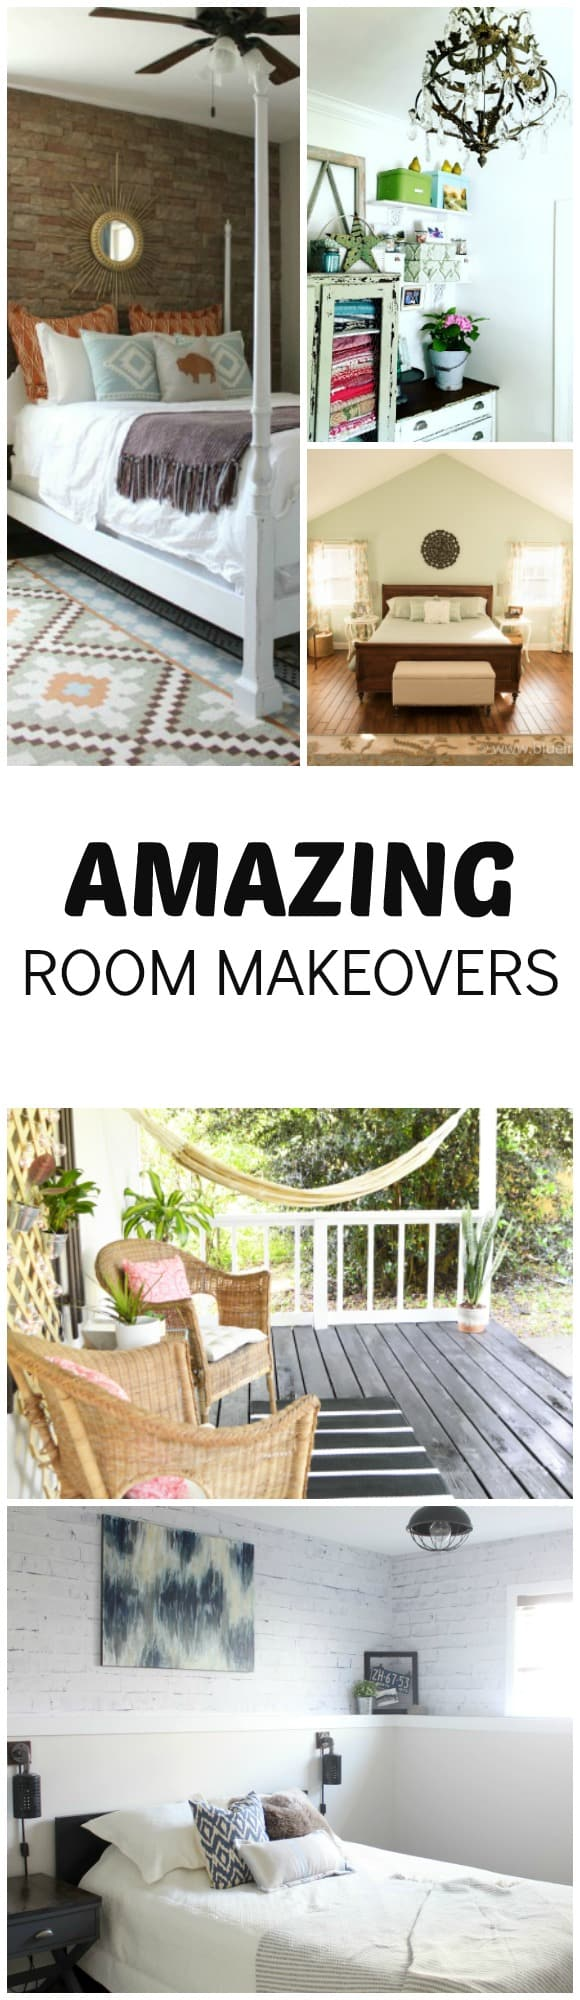 AMAZING ROOM makeovers